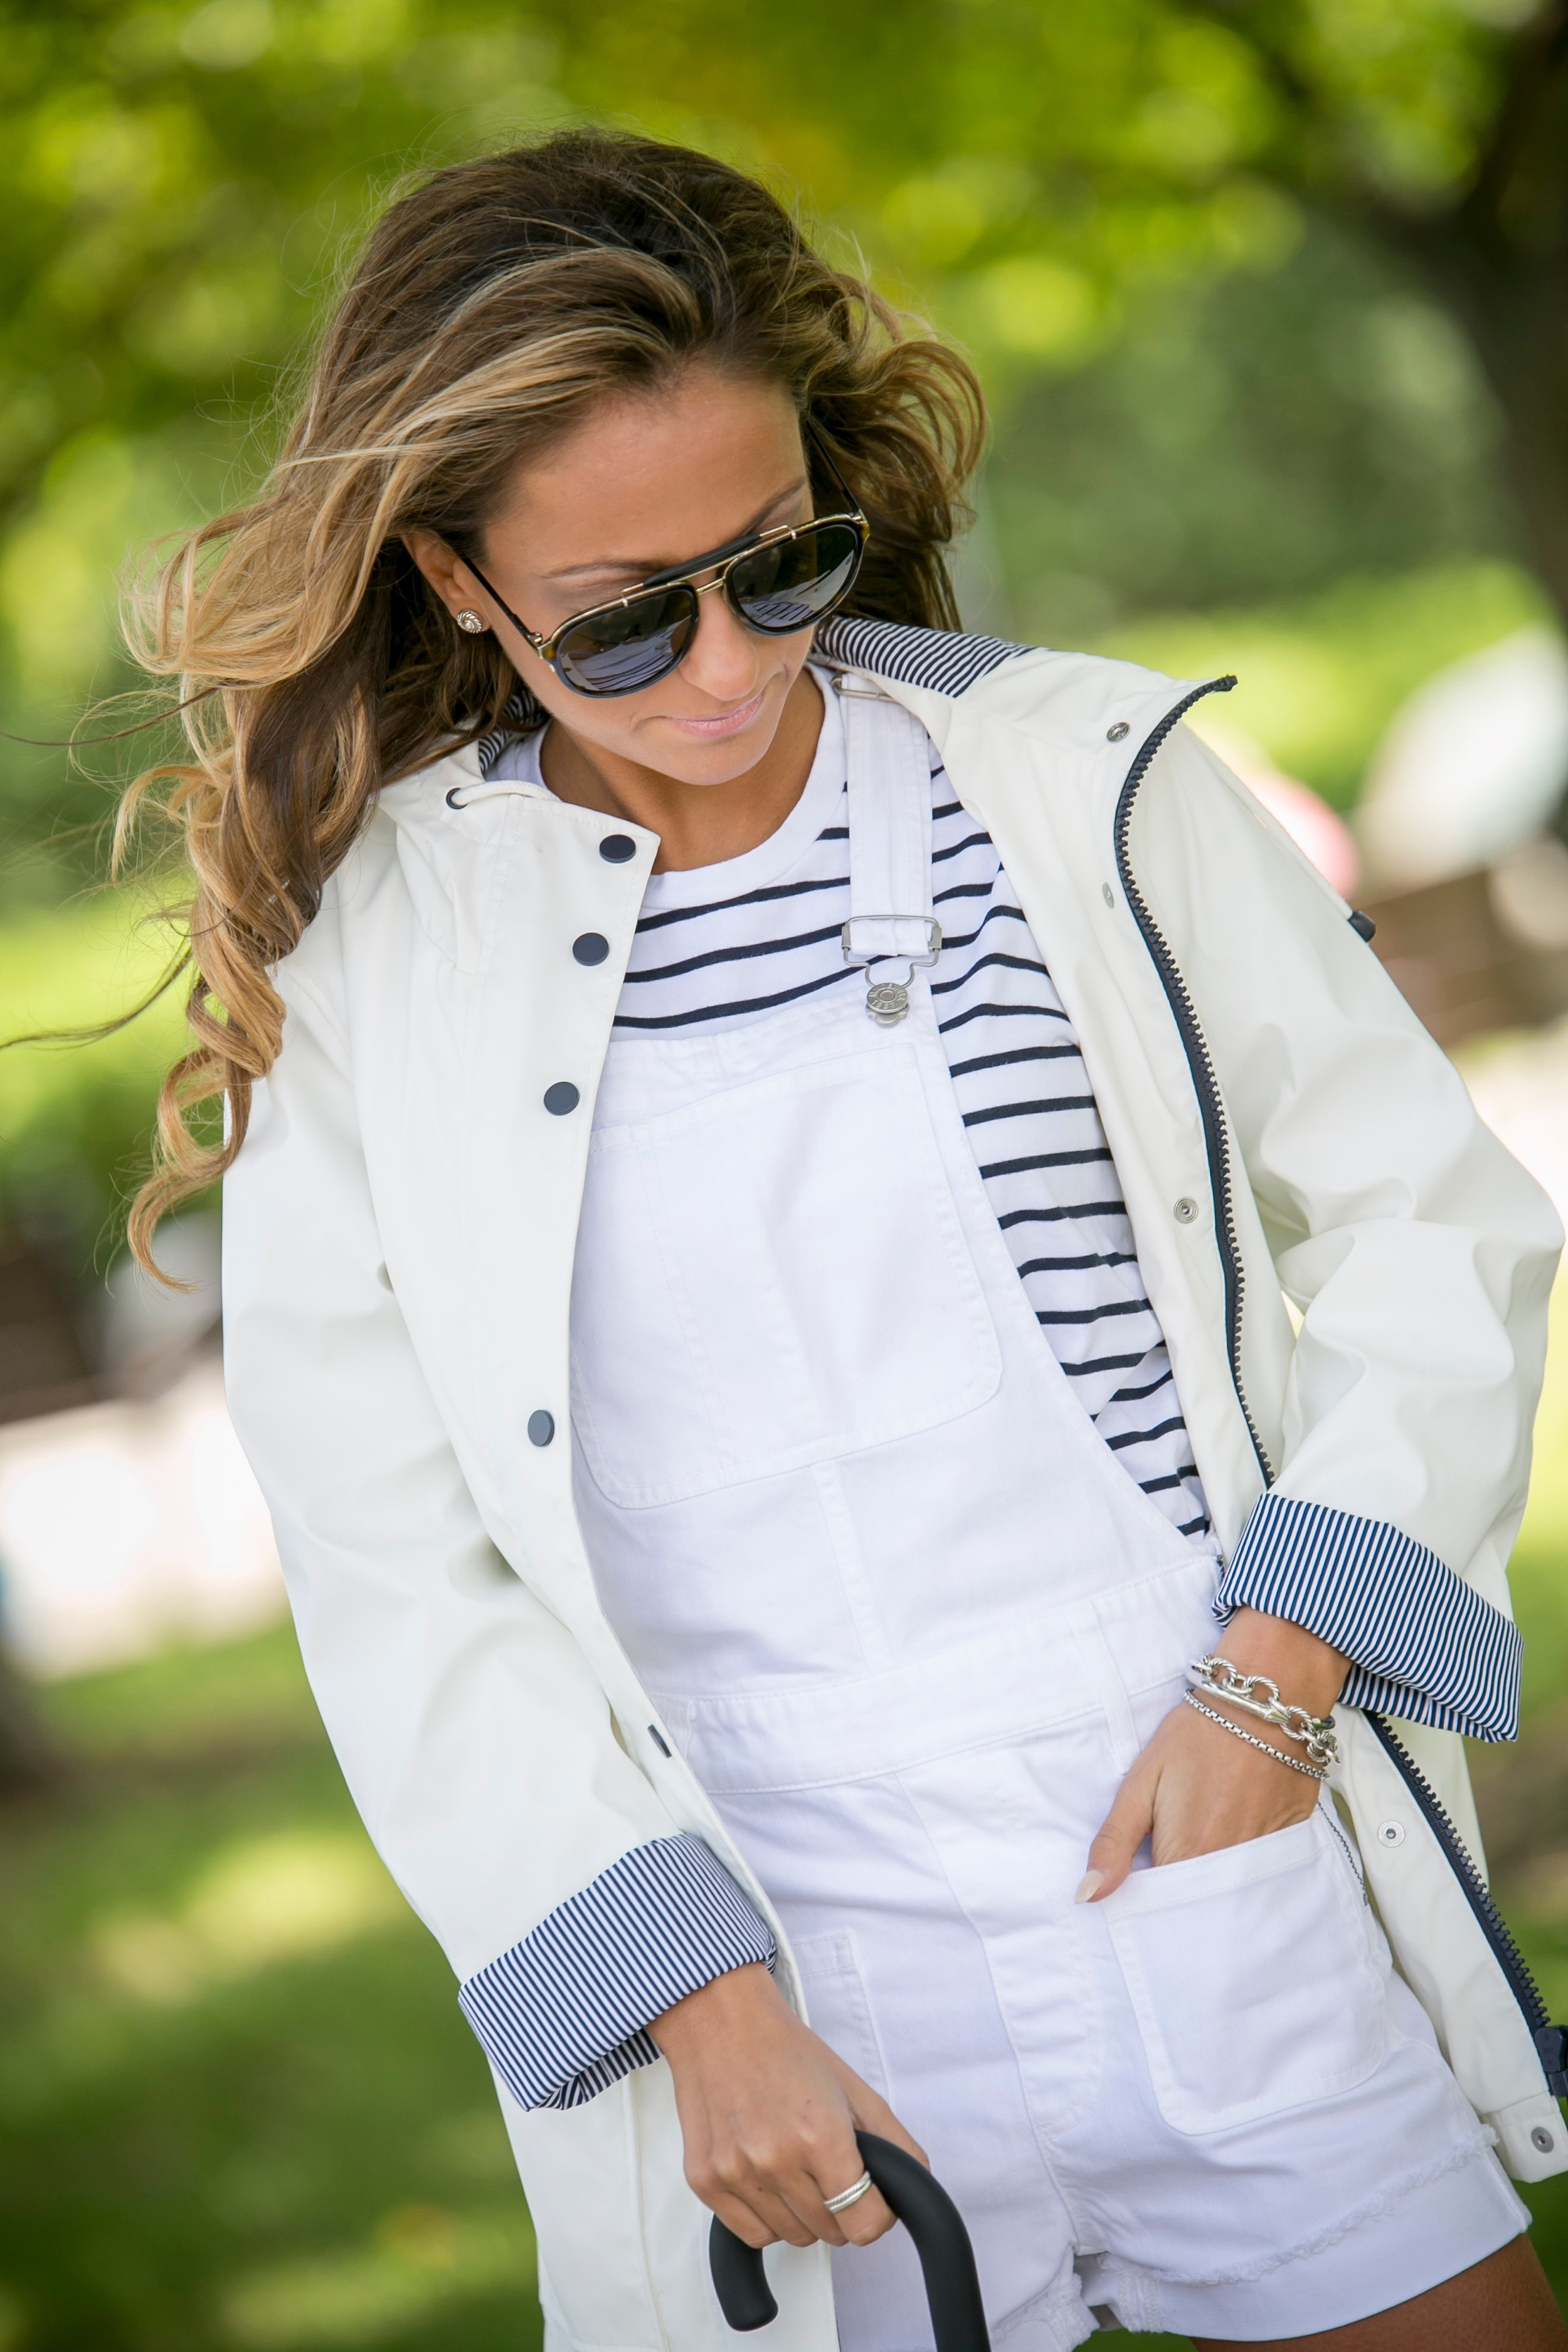 Topshop rain coat, rag and bone striped tee, and made well white short overalls as seen on Lauren Recchia from the NYC based fashion blog North of Manhattan